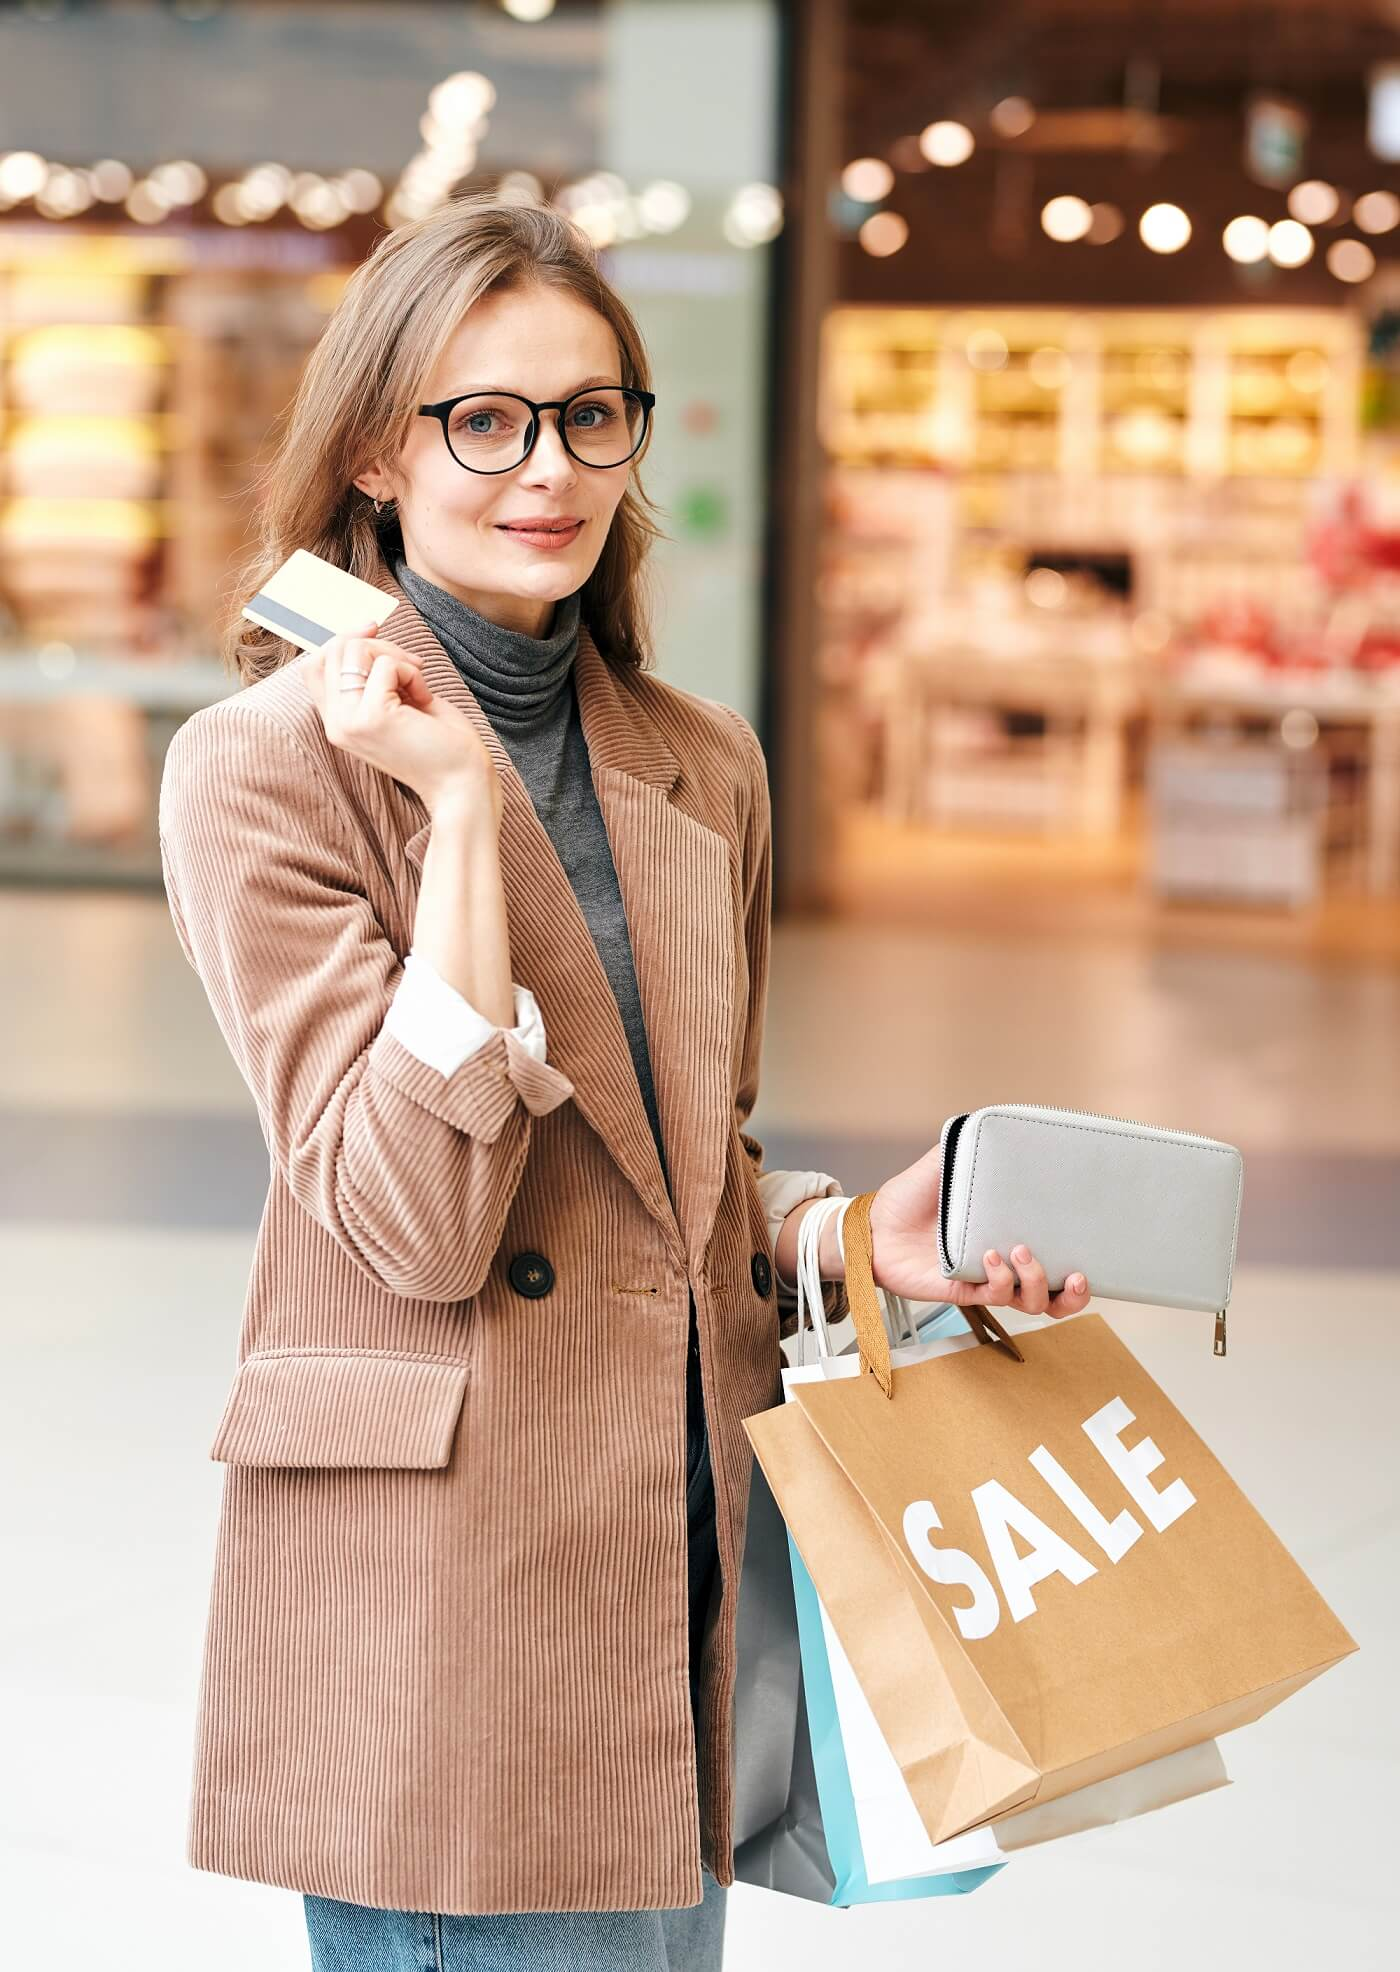 young woman standing with shopping bags